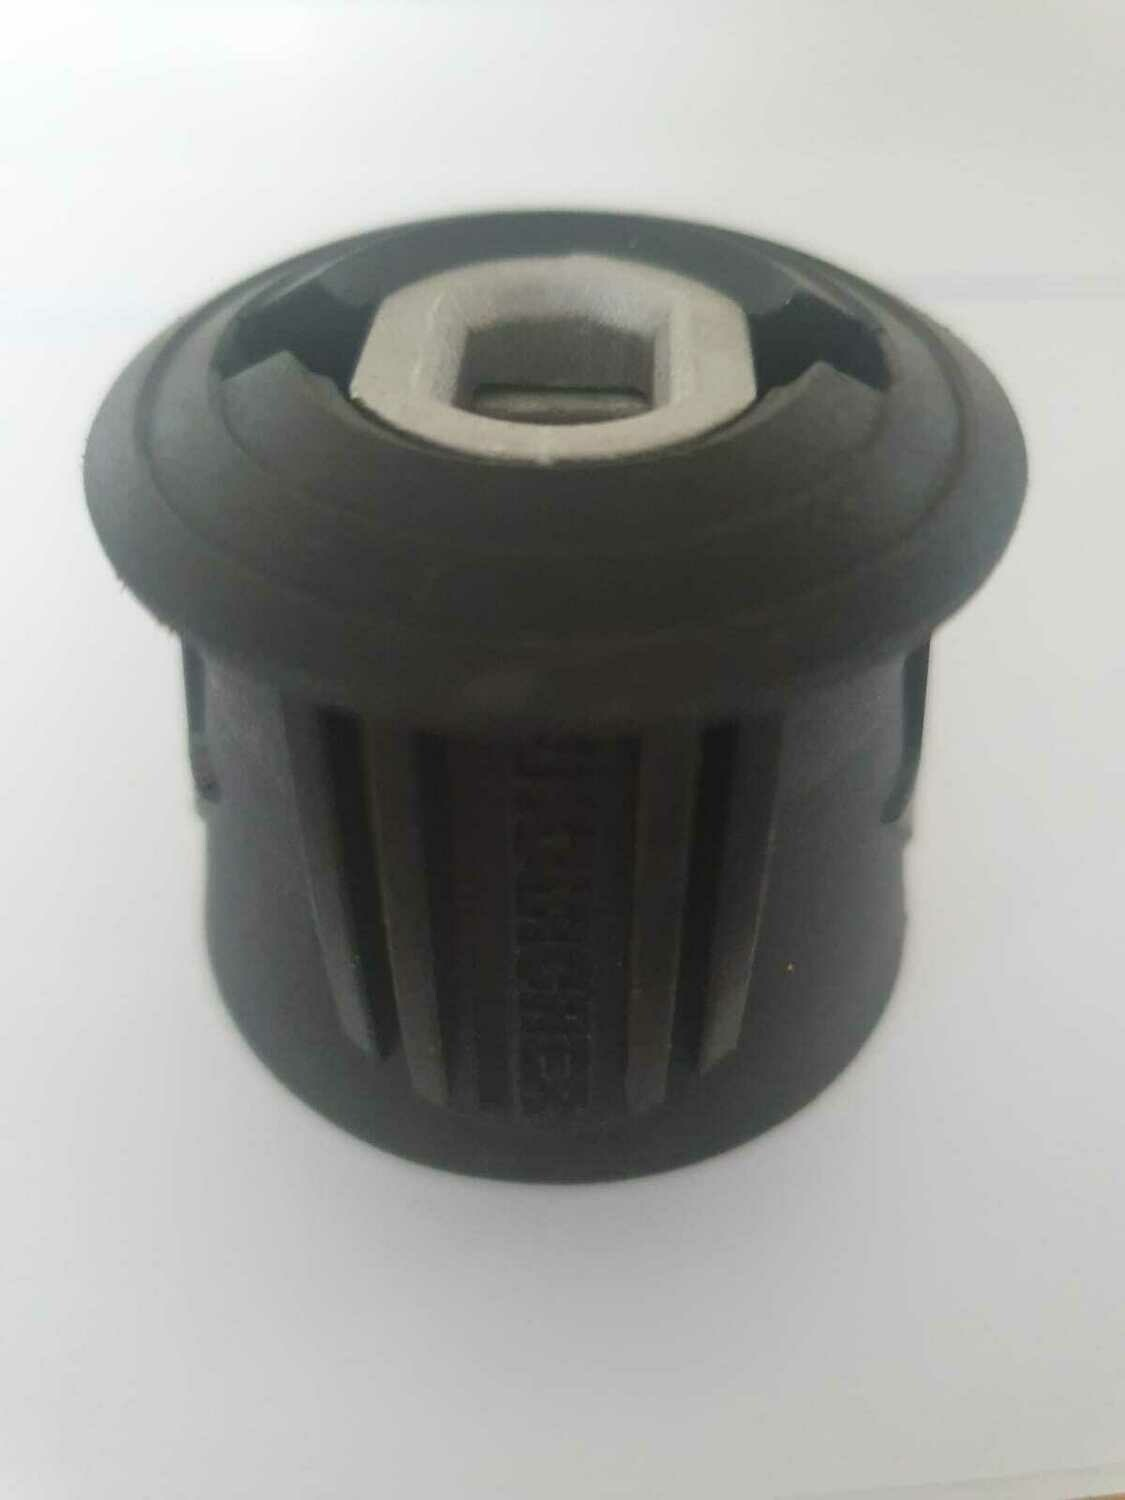 KARCHER K Quick Release Fitting